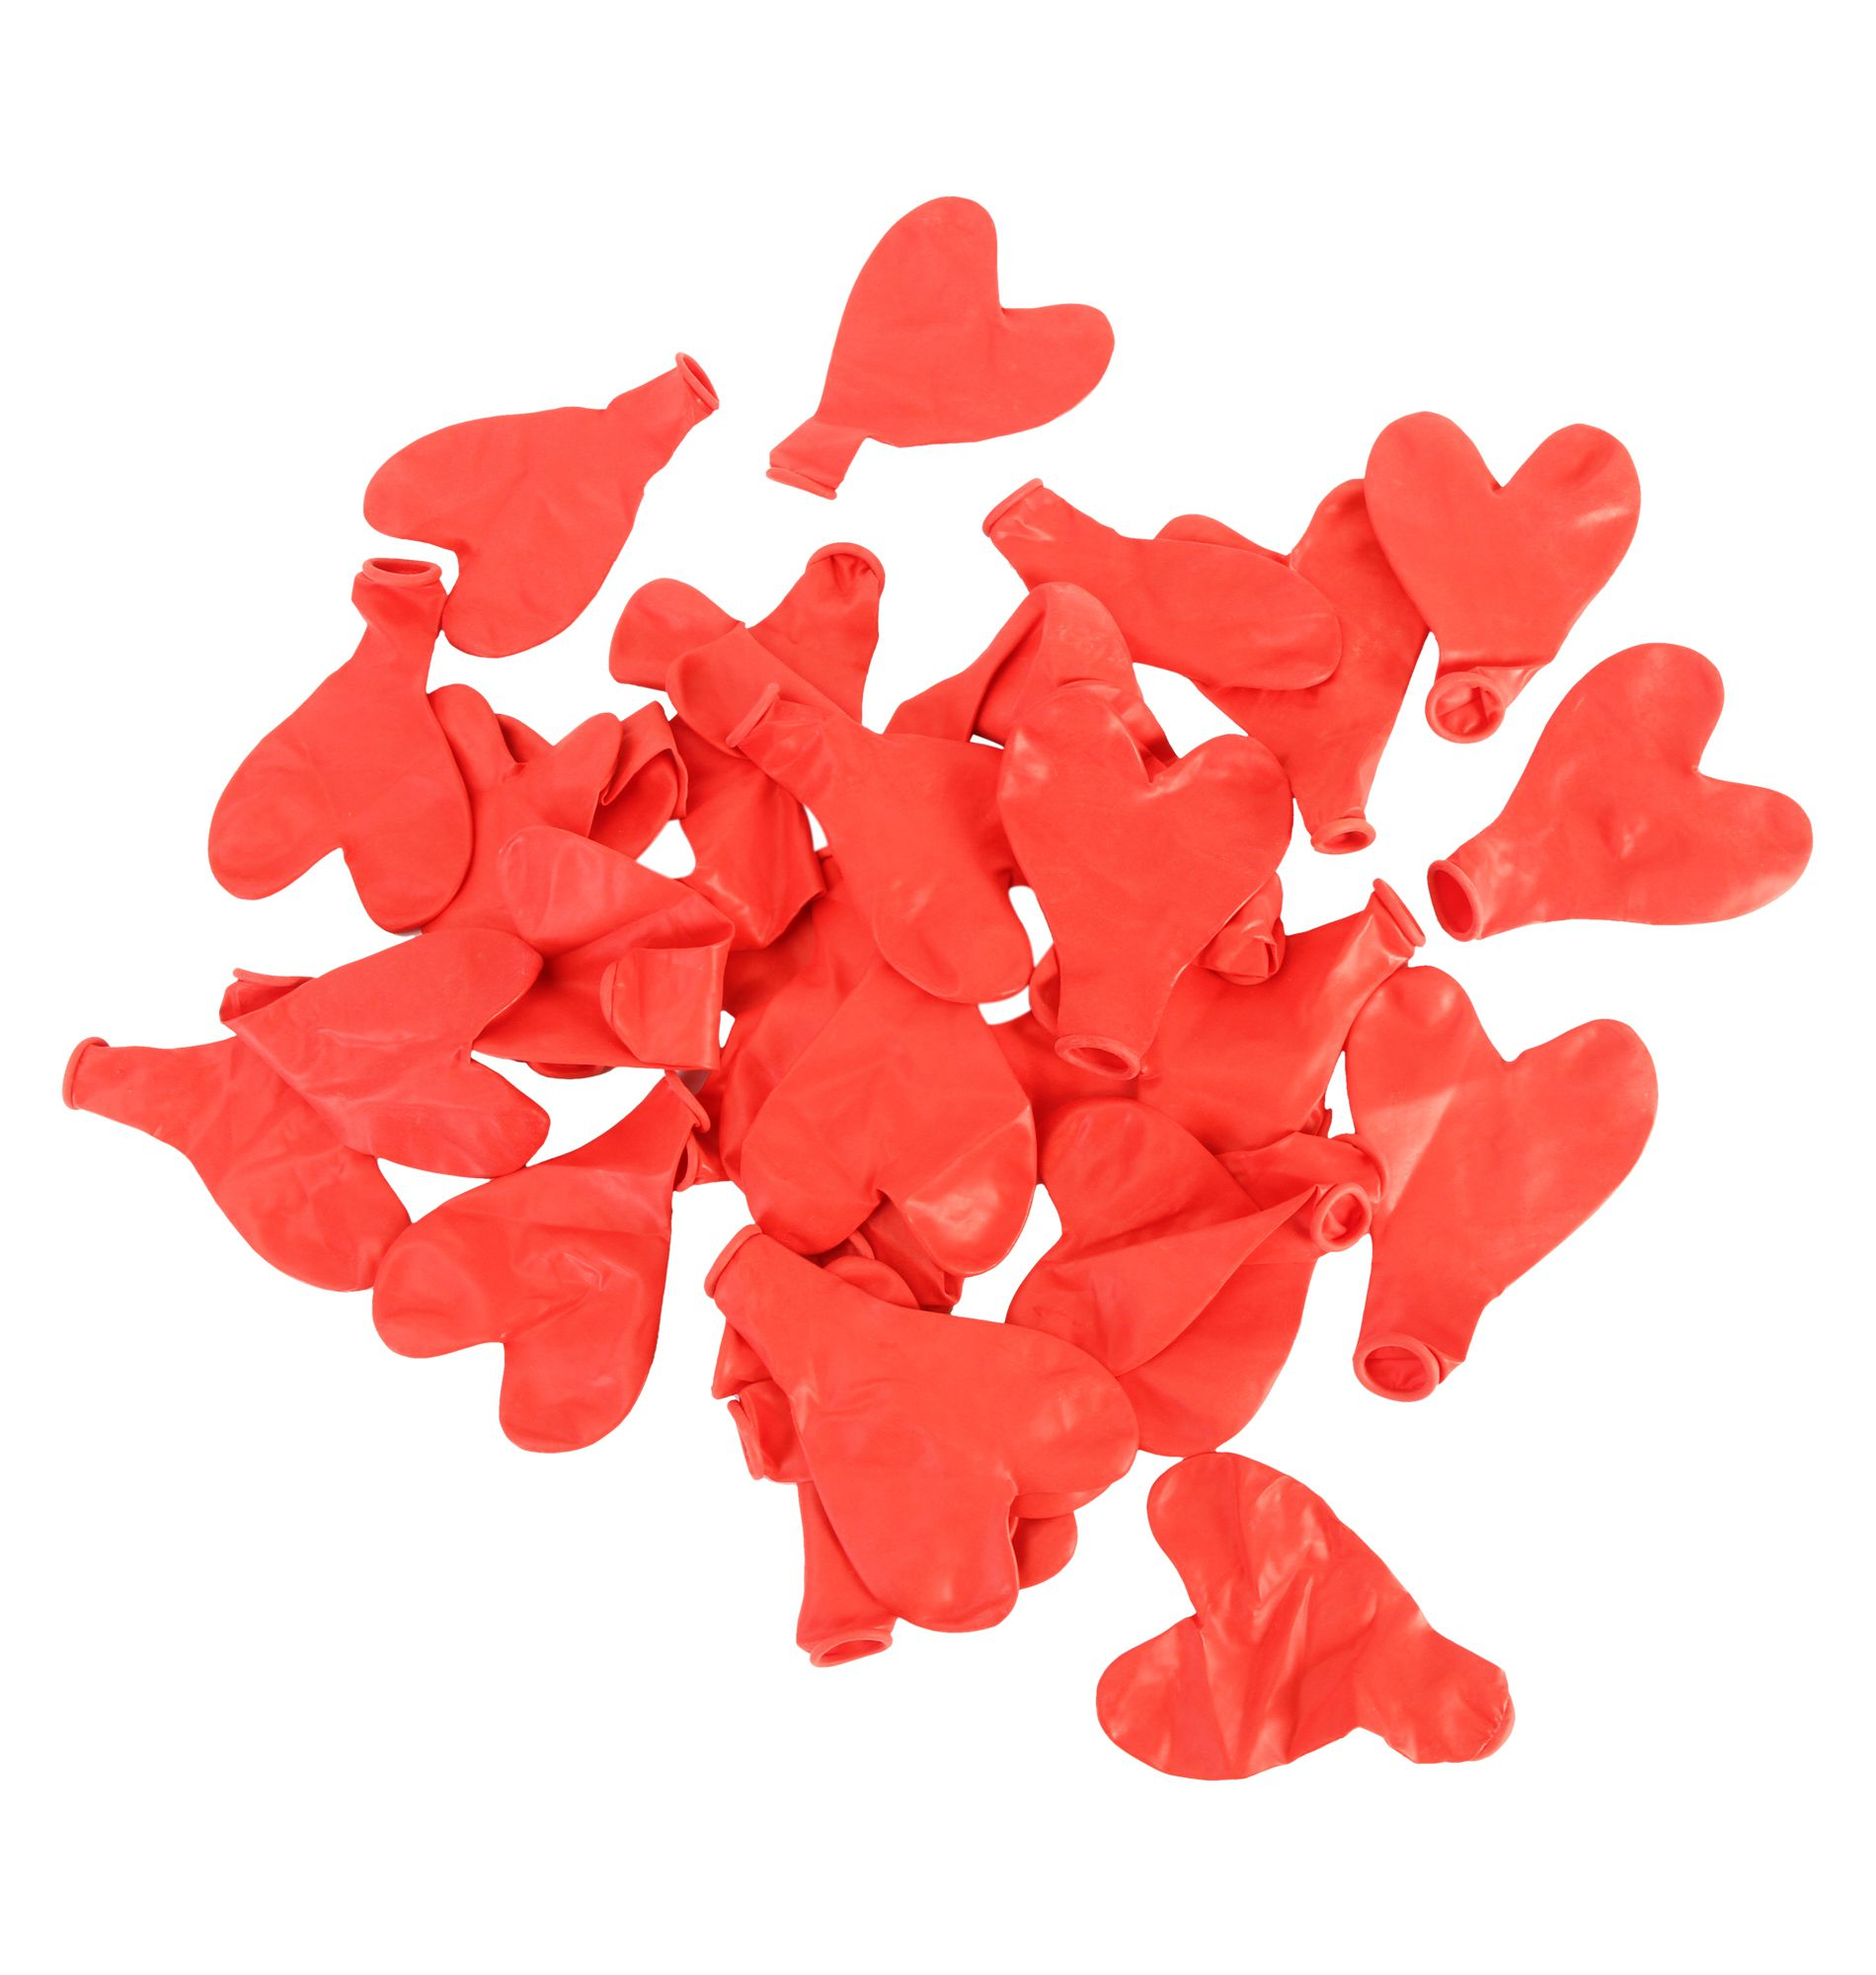 GB Balloons Plain Red Hearts Party Balloons 35pc